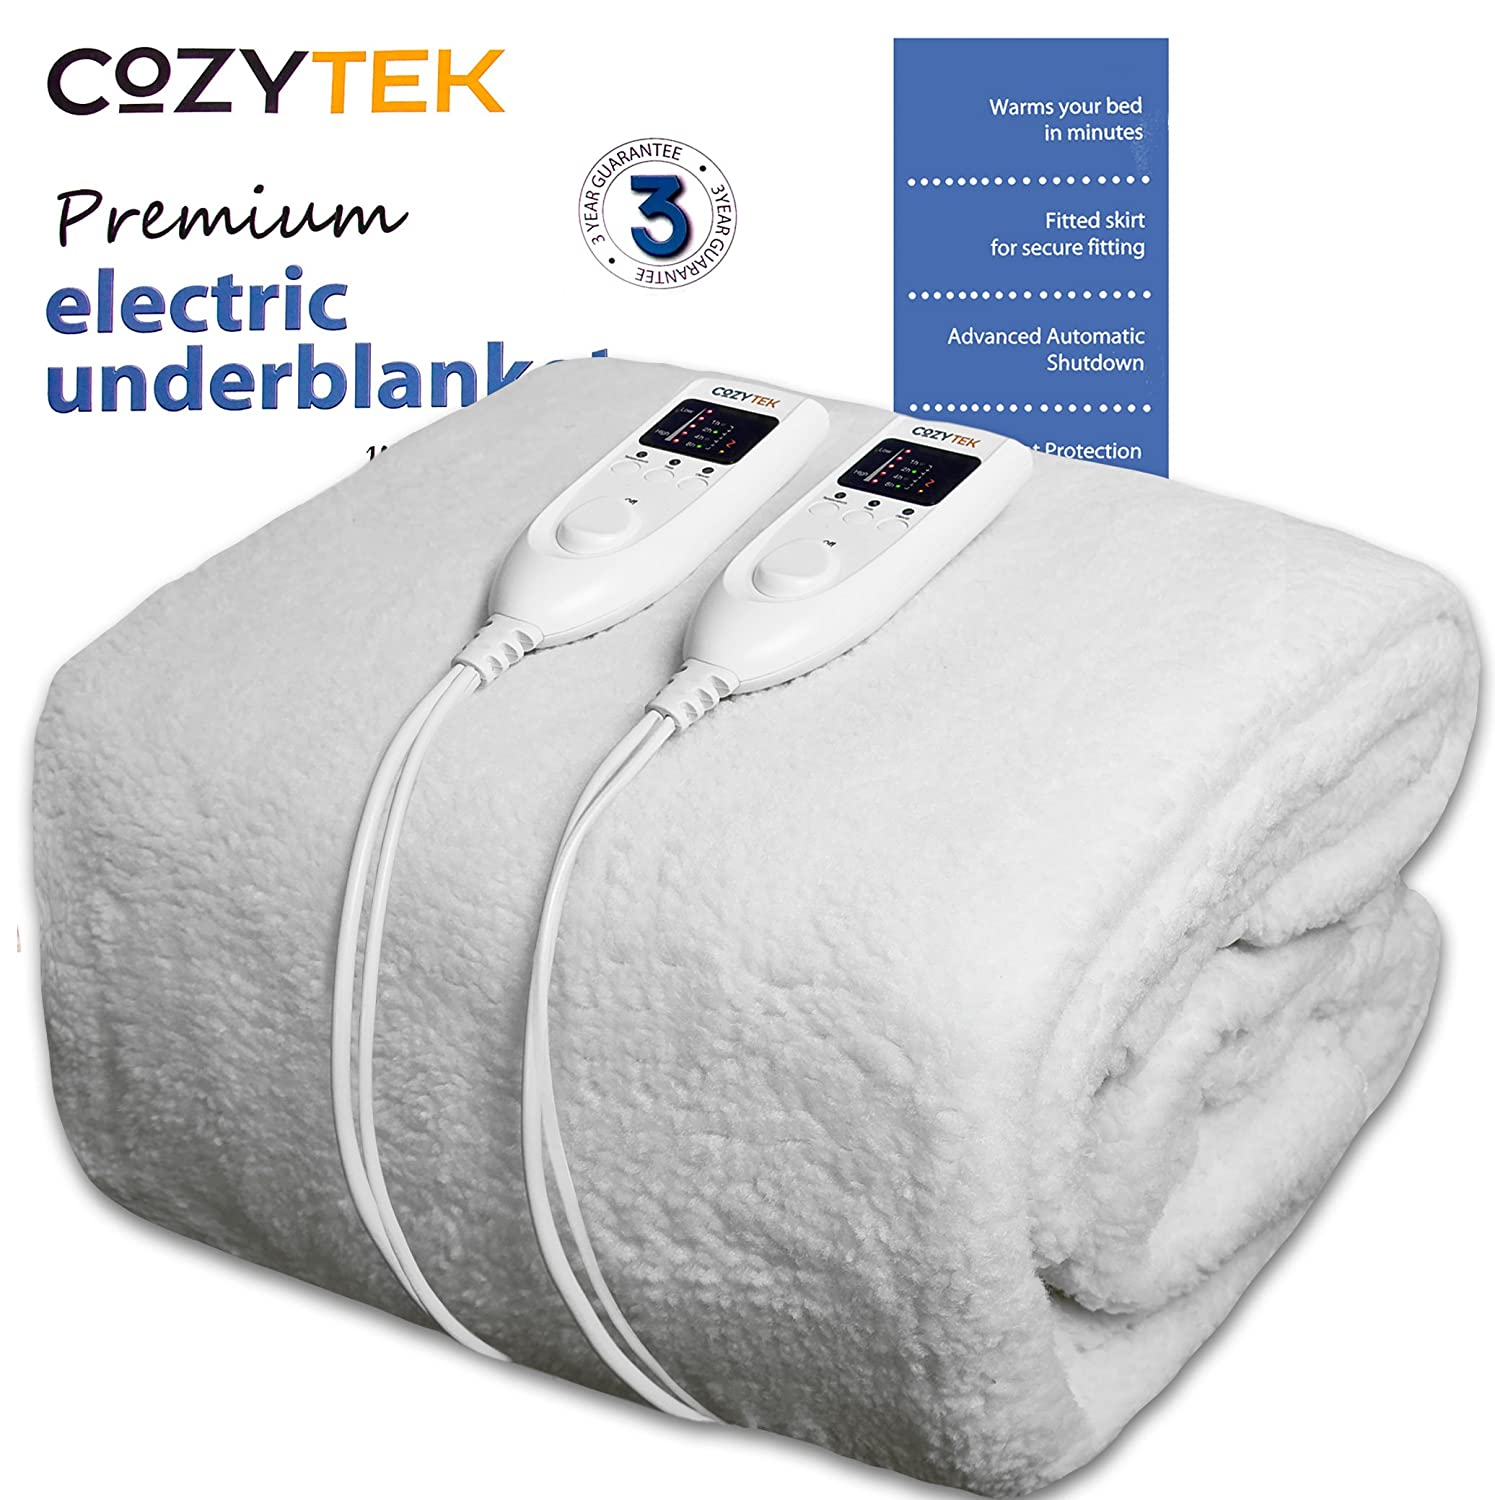 Cozytek Double Electric Blanket Premium Polar Fleece, Double Bed 193 x 137cm, Electric Heated Blanket, Soft Fitted Underblanket with LED Controller, 5 Comfort settings, Timer Functionality and Machine Washable